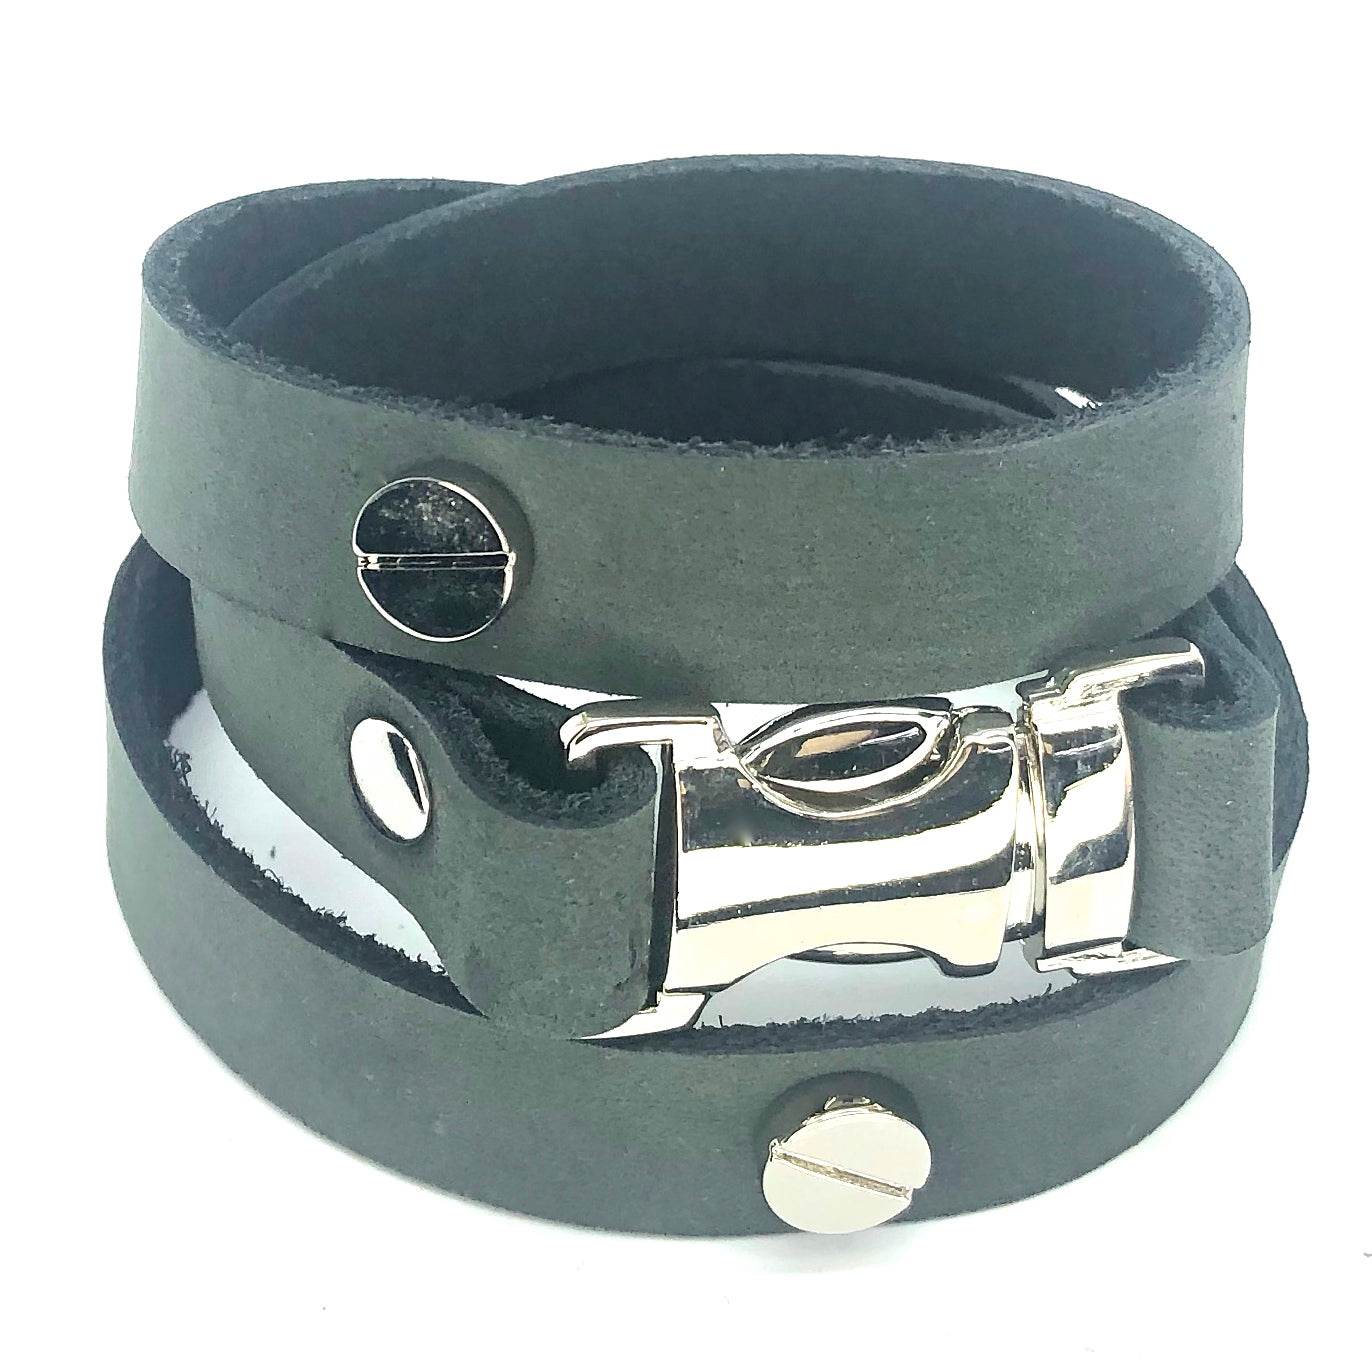 Quicksnap triple leather wraparound bracelet distressed utility leather by nyet jewelry,